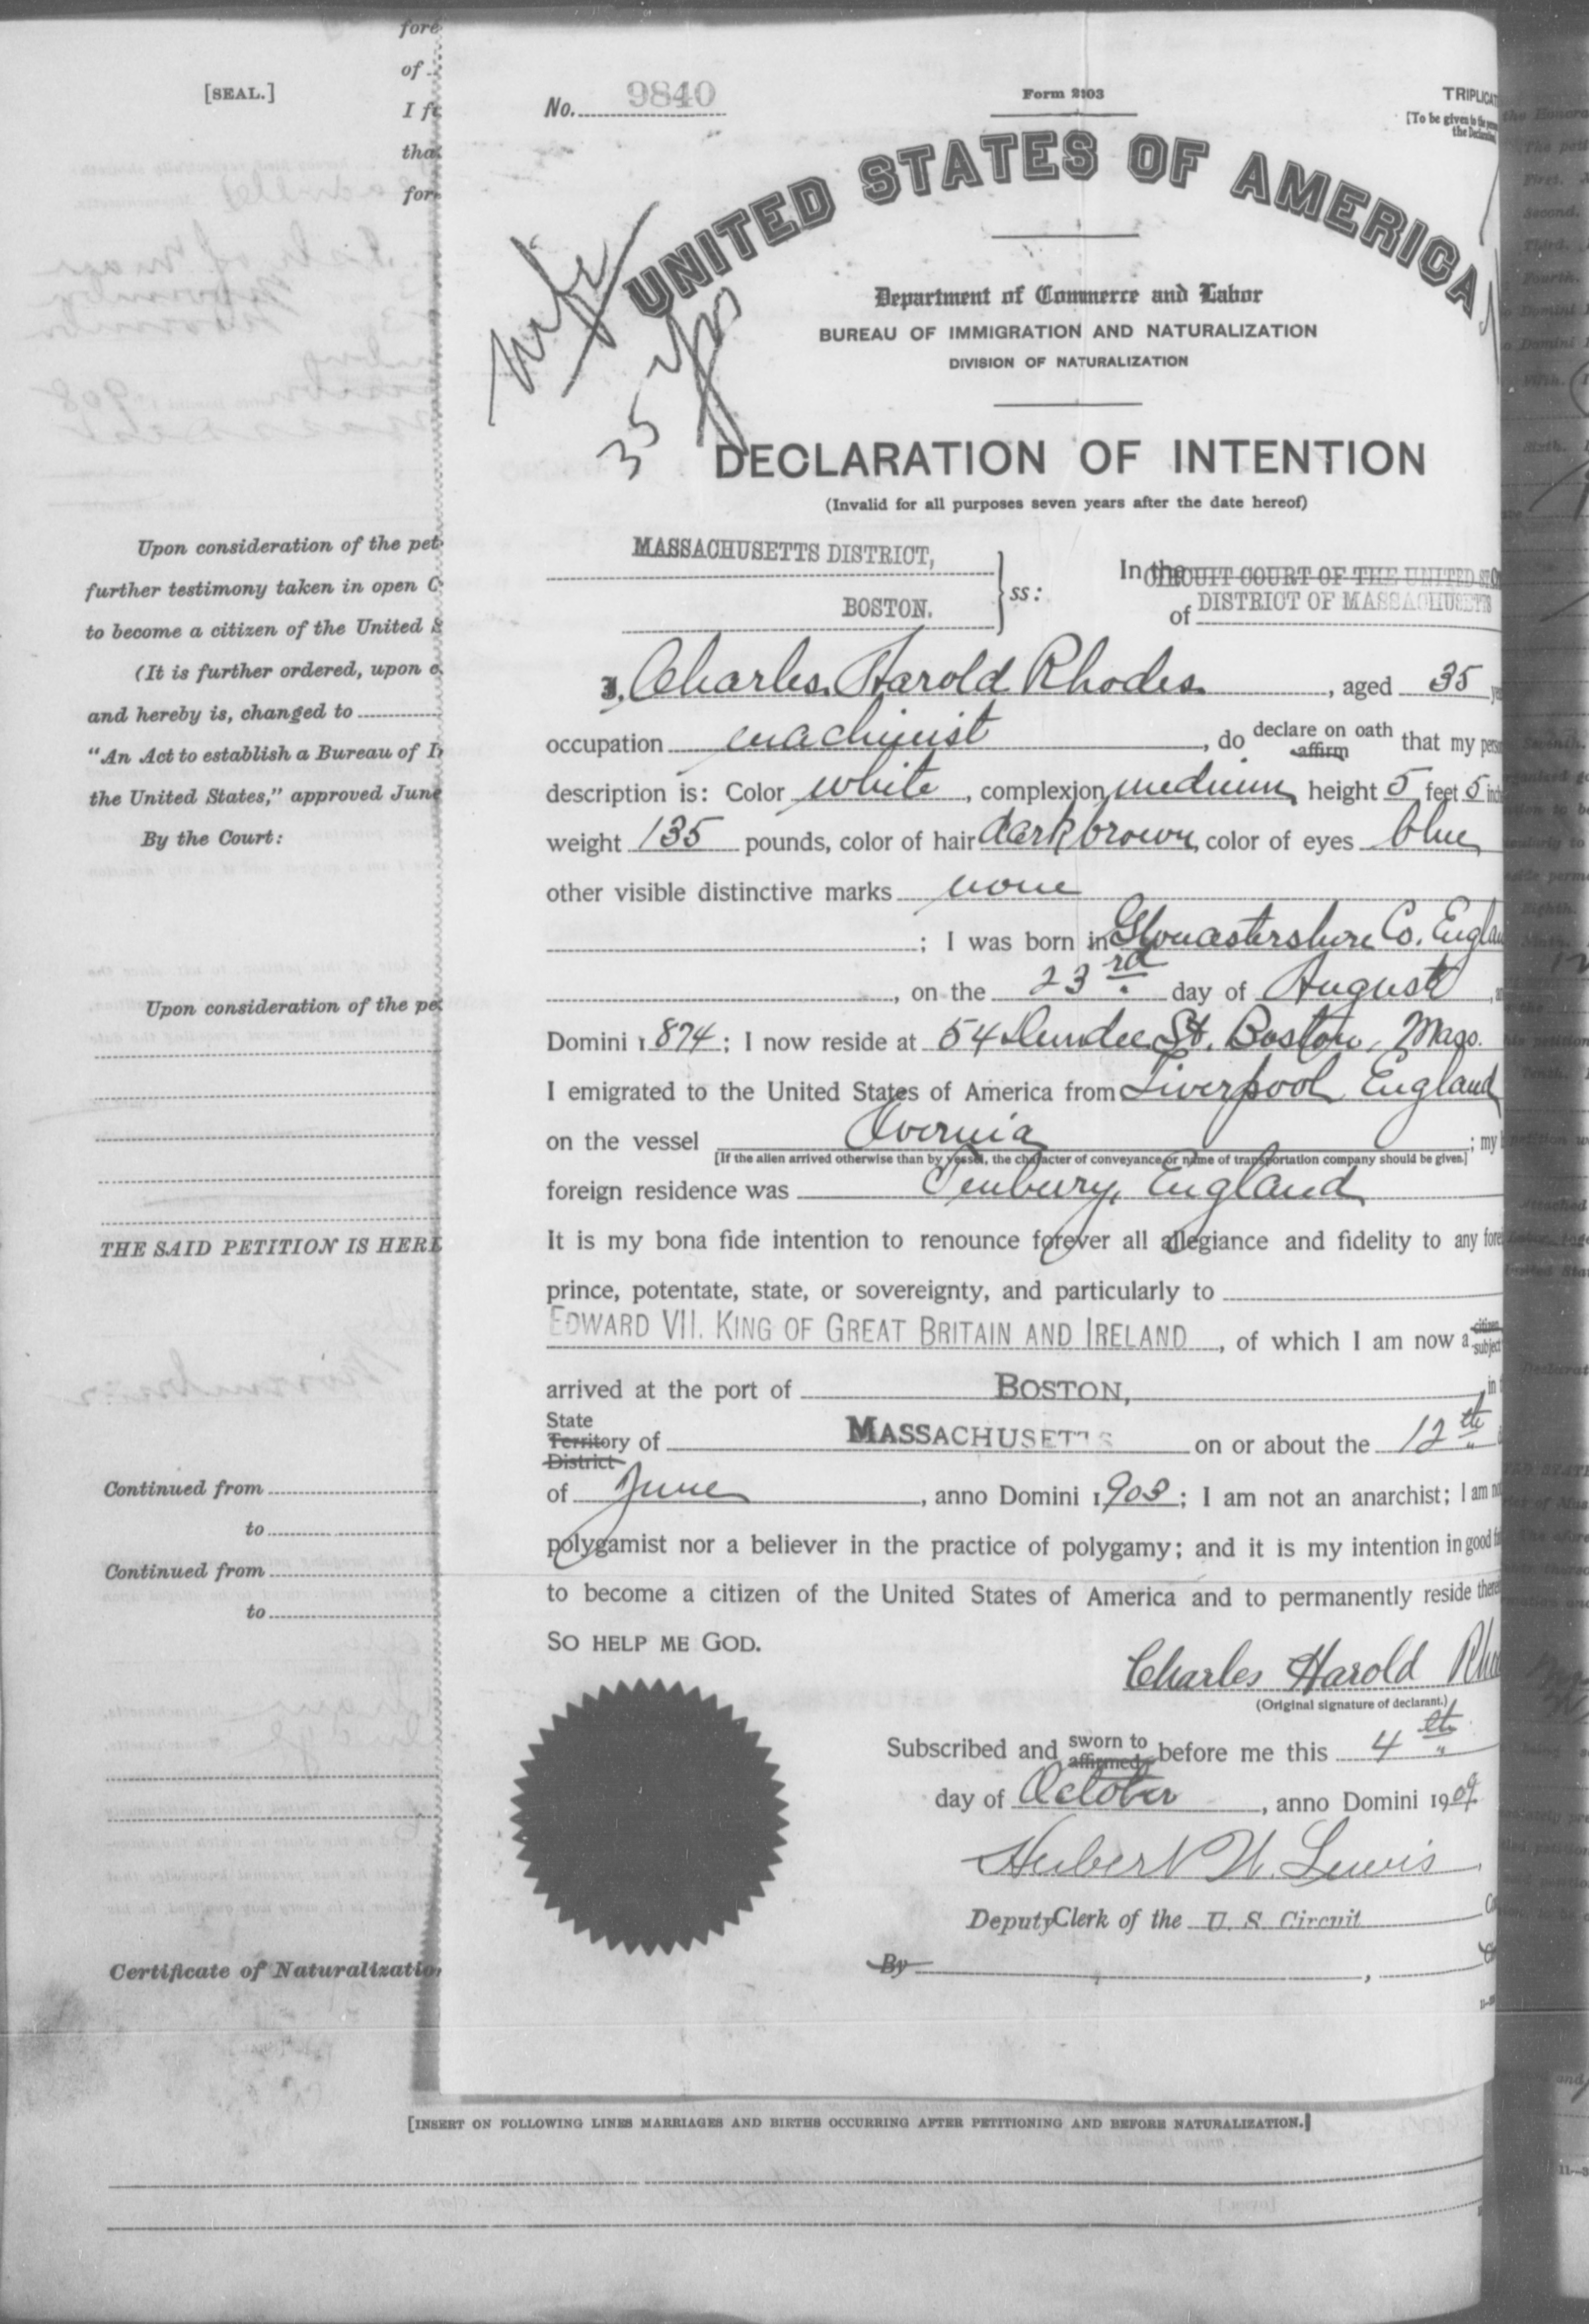 Petition for Naturalization of Charles Harold Rhodes